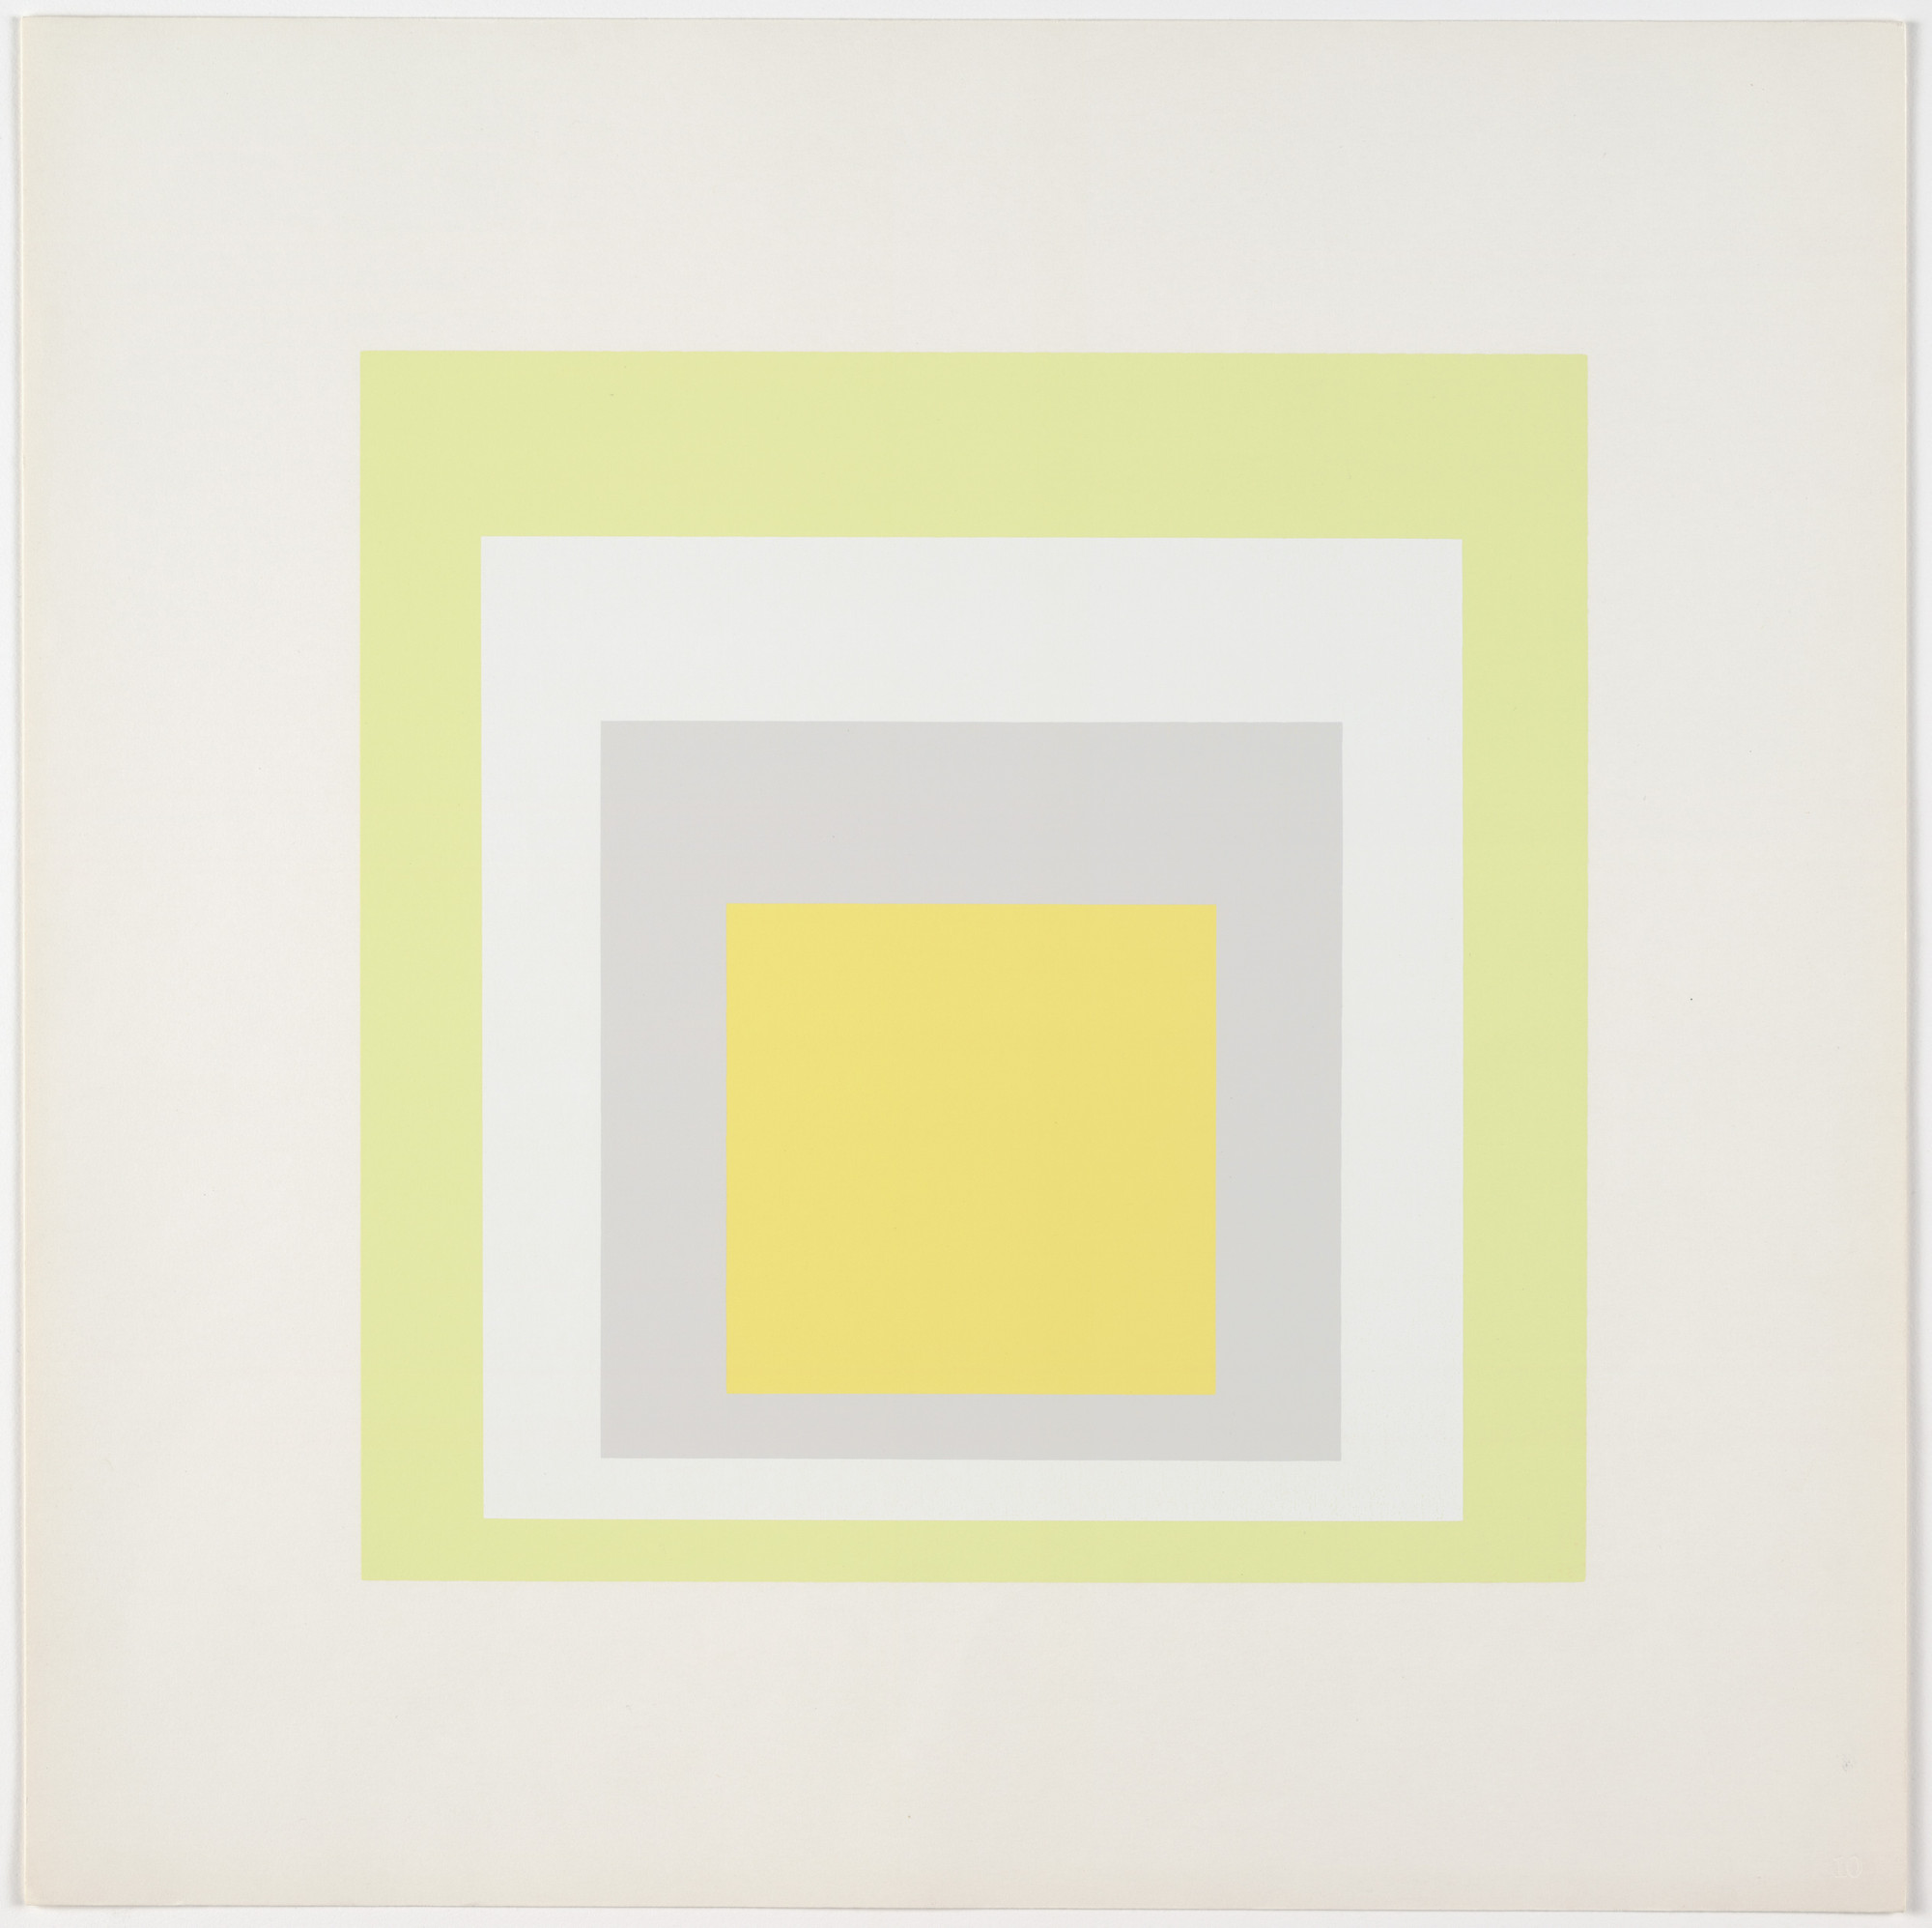 Josef Albers. Joy from Homage to the Square: Ten Works by Josef Albers. 1962